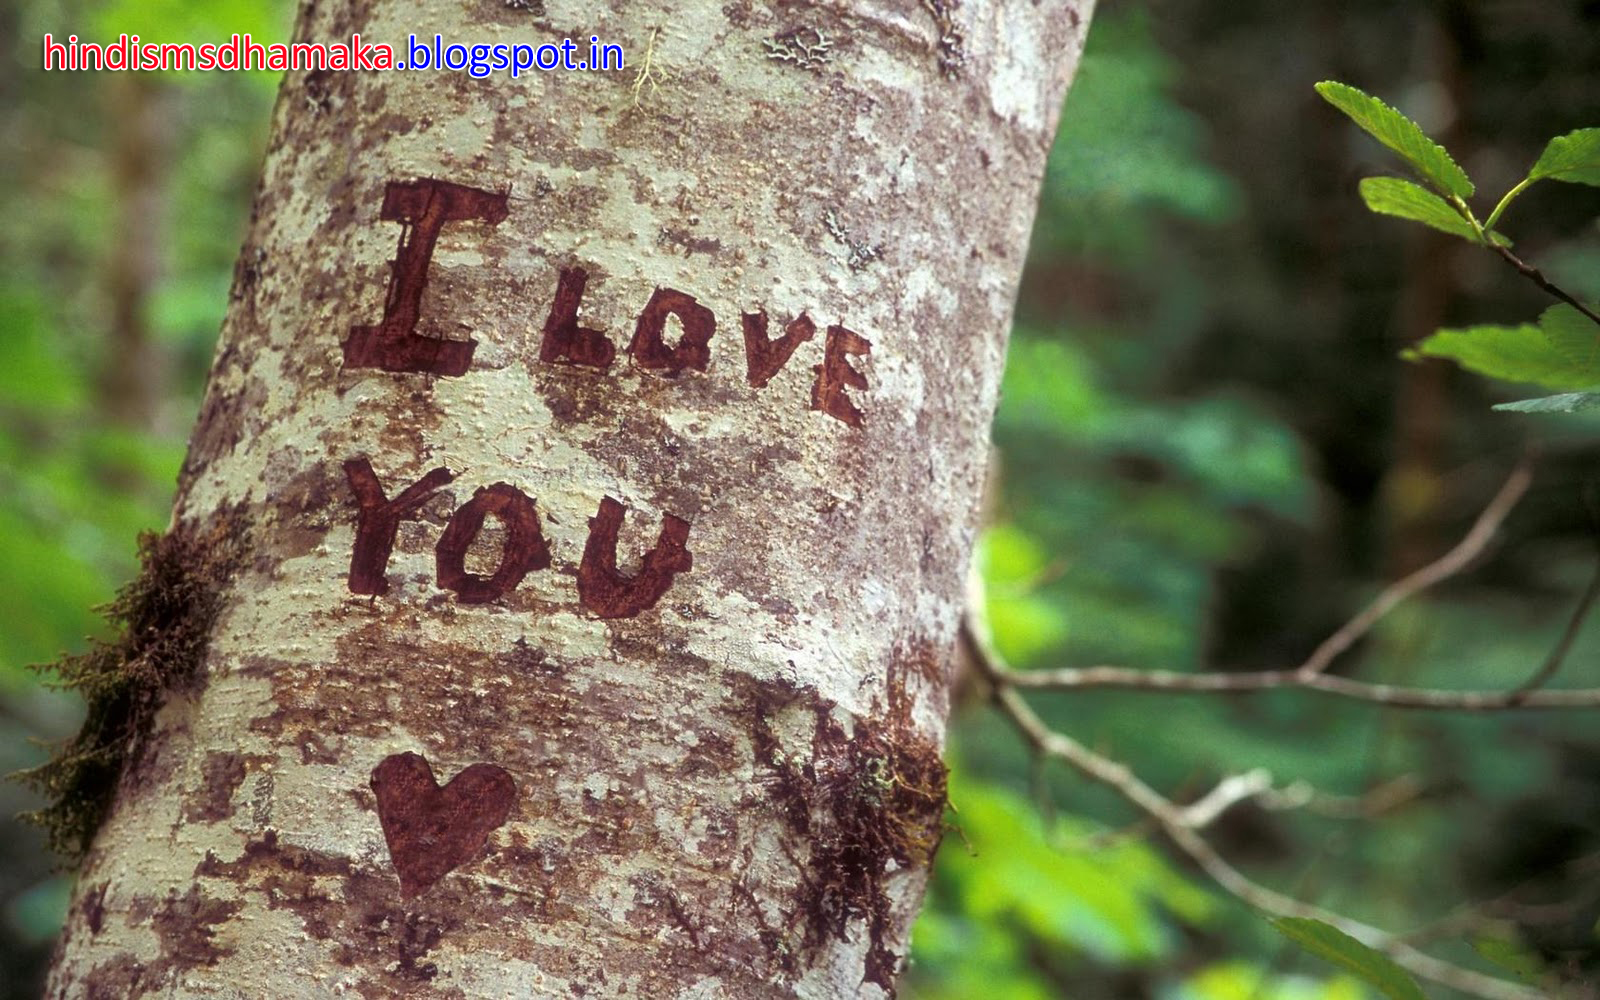 I Love You On Tree Wallpapercute Quotes Happiness